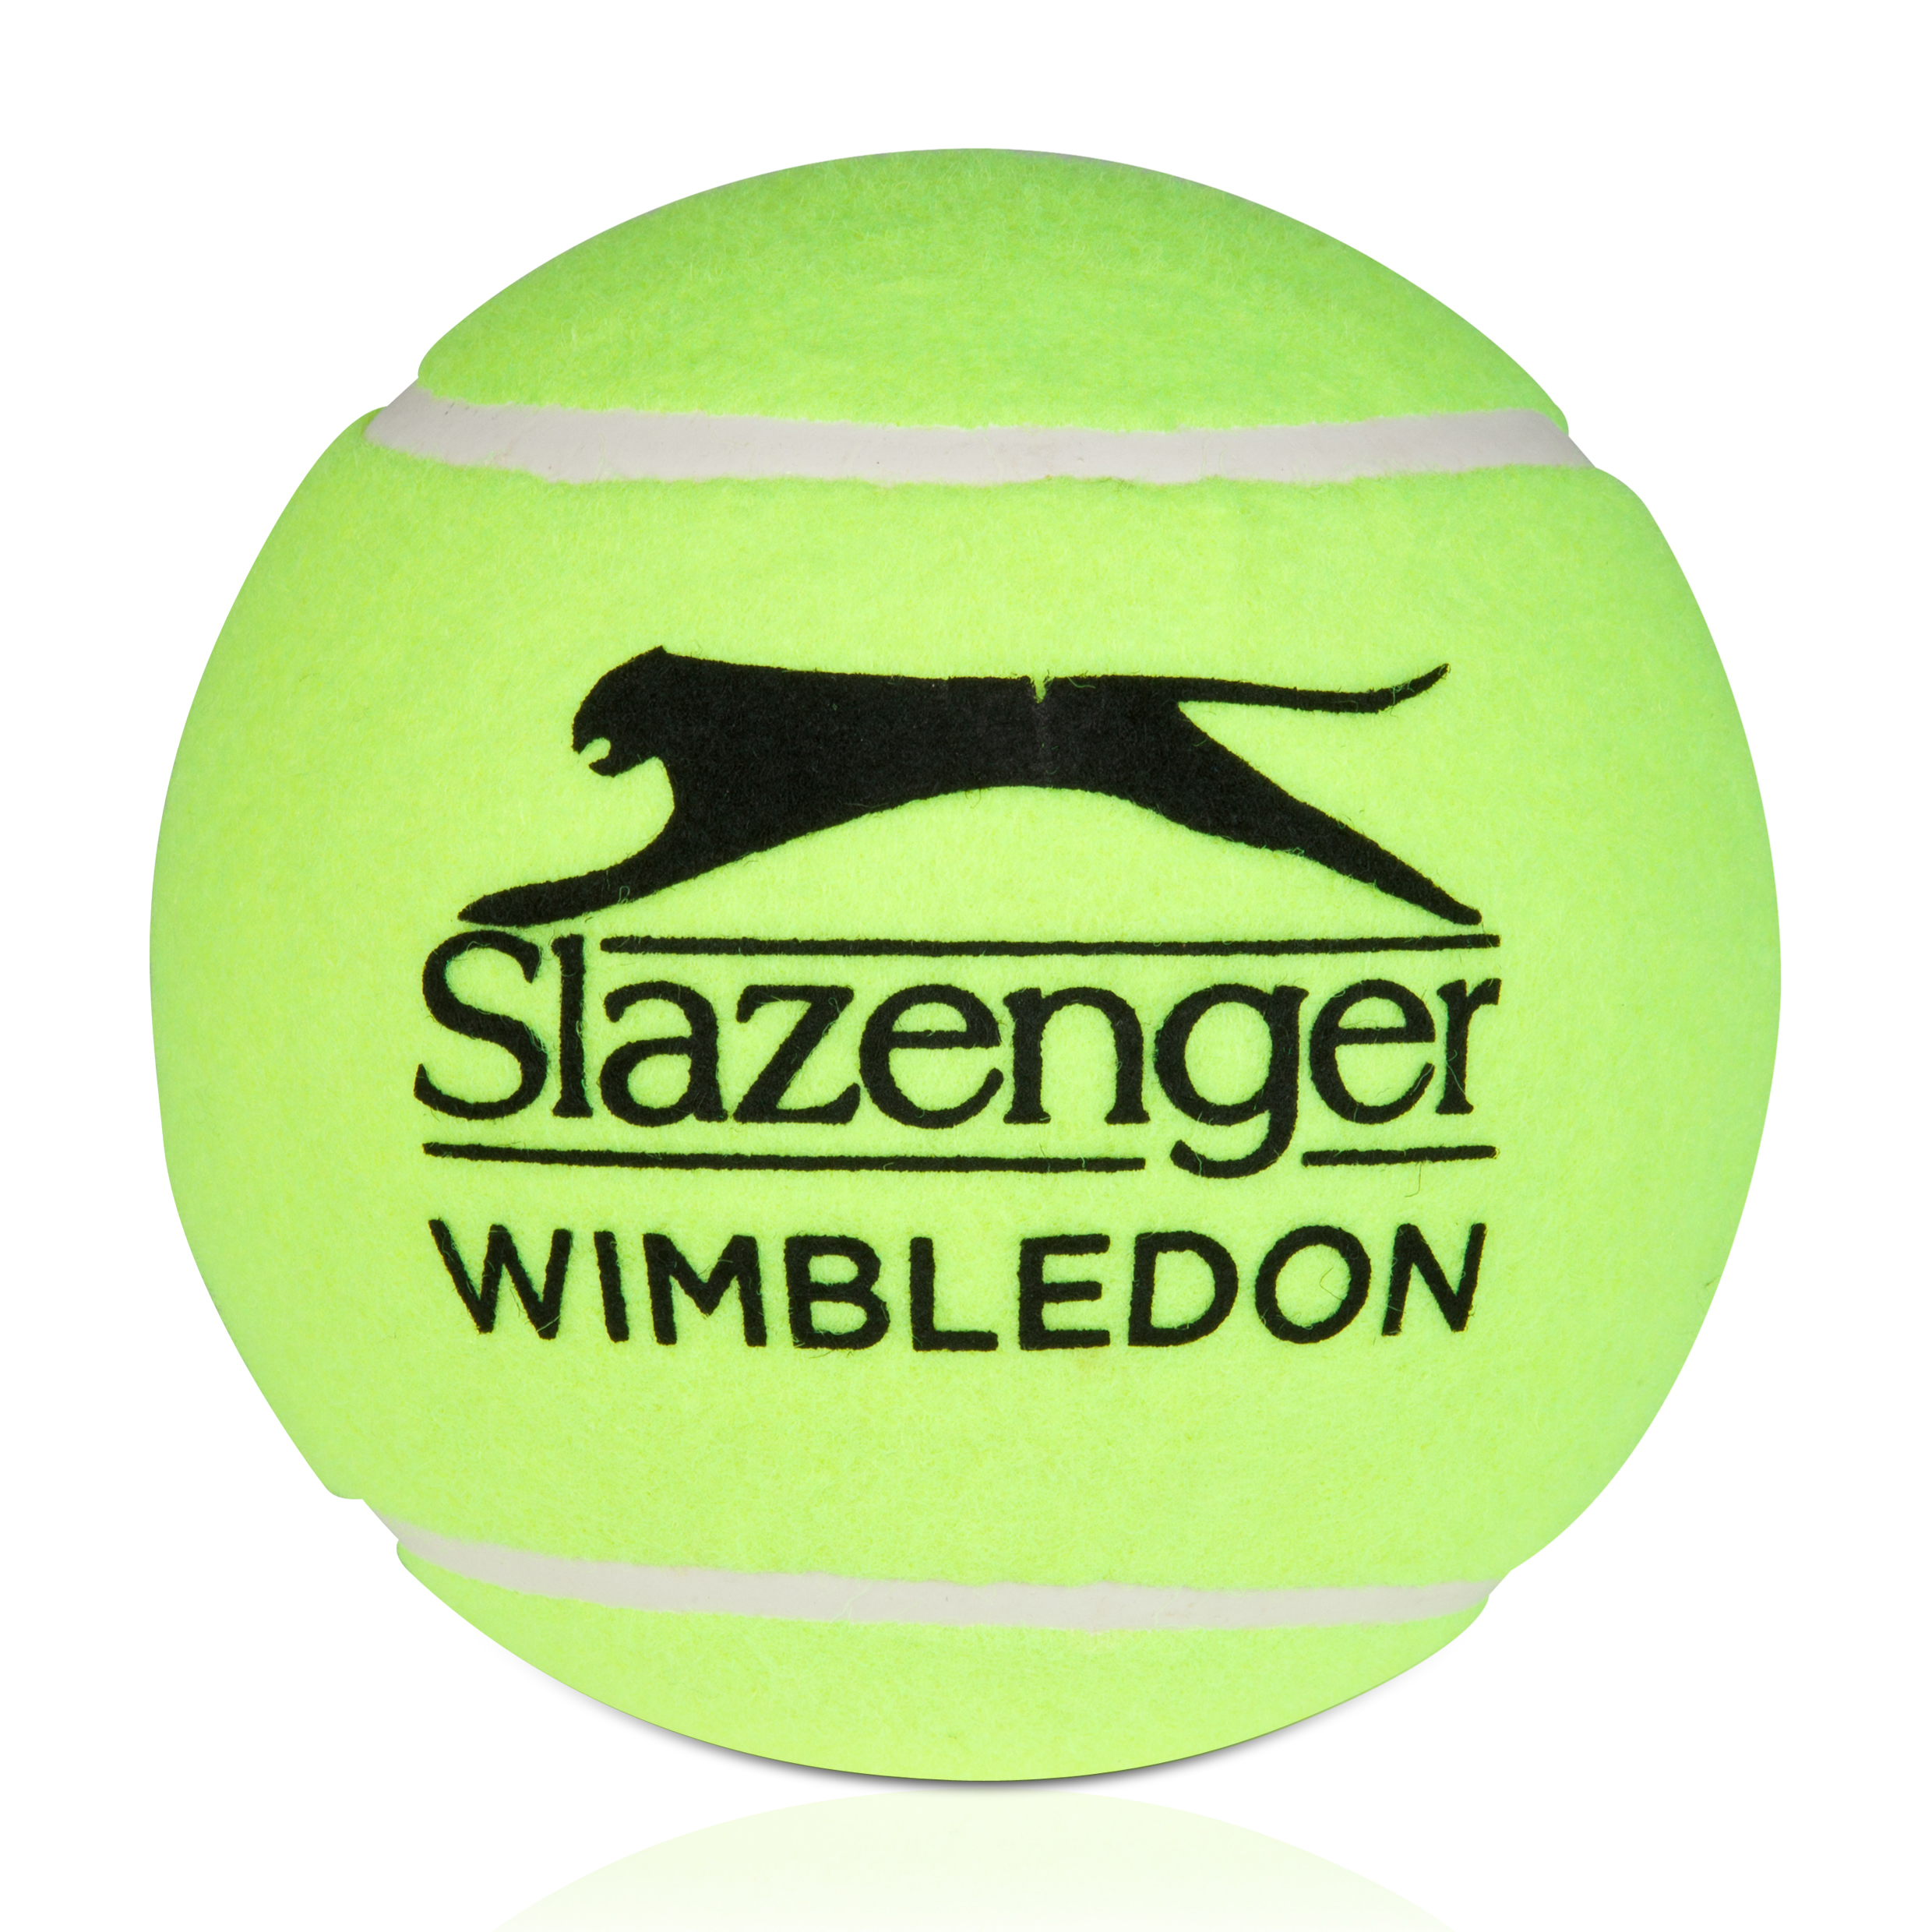 Wimbledon Slazenger Midi Ball - Yellow